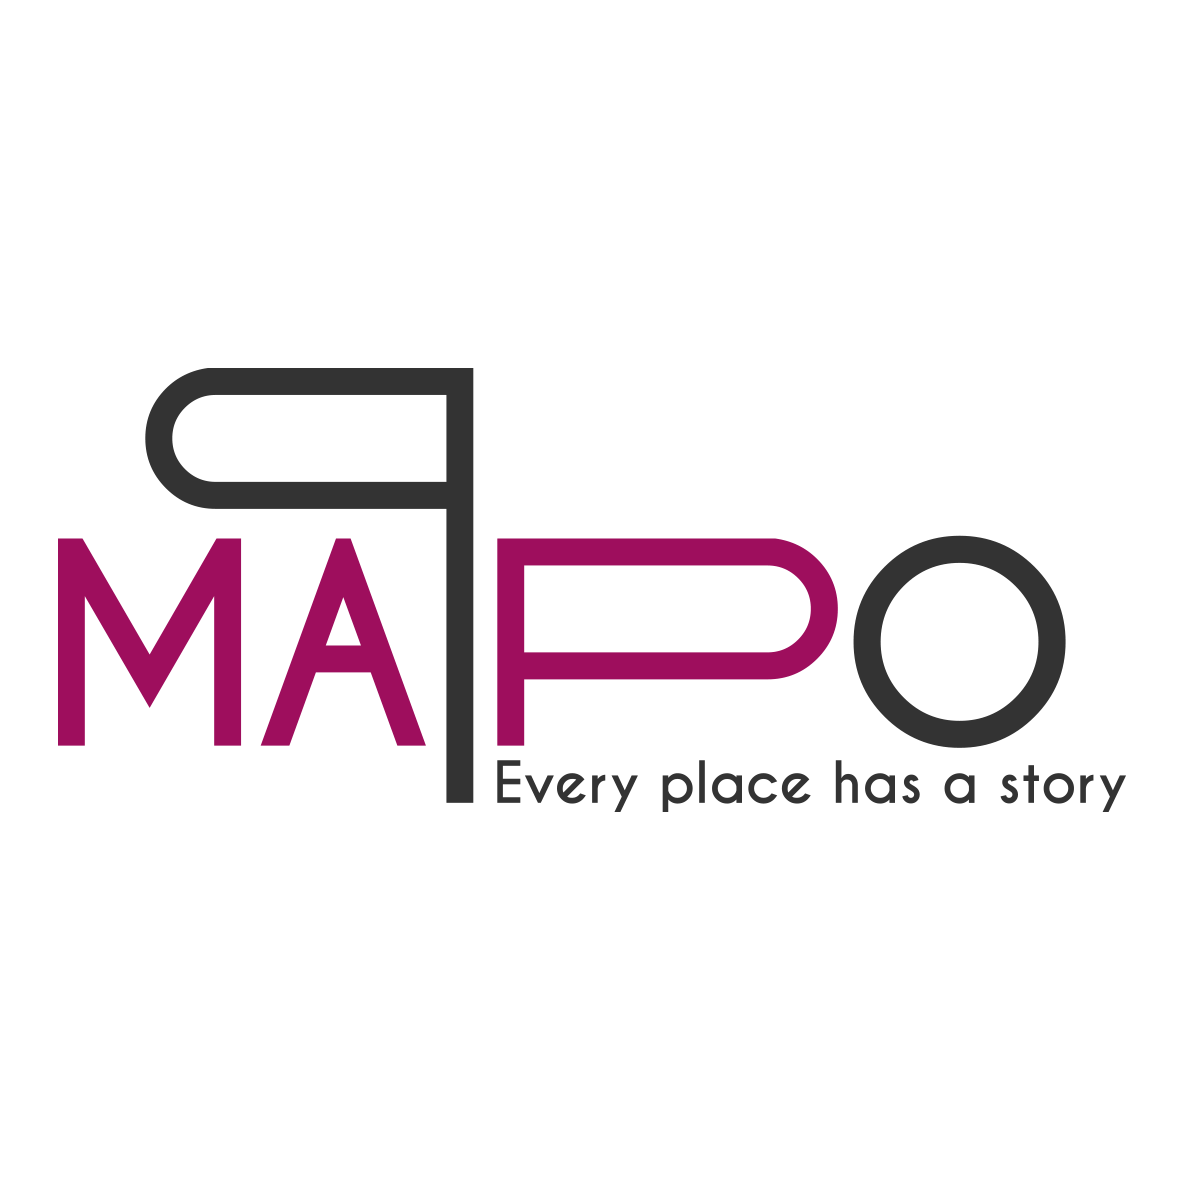 Mappo Every place has a story